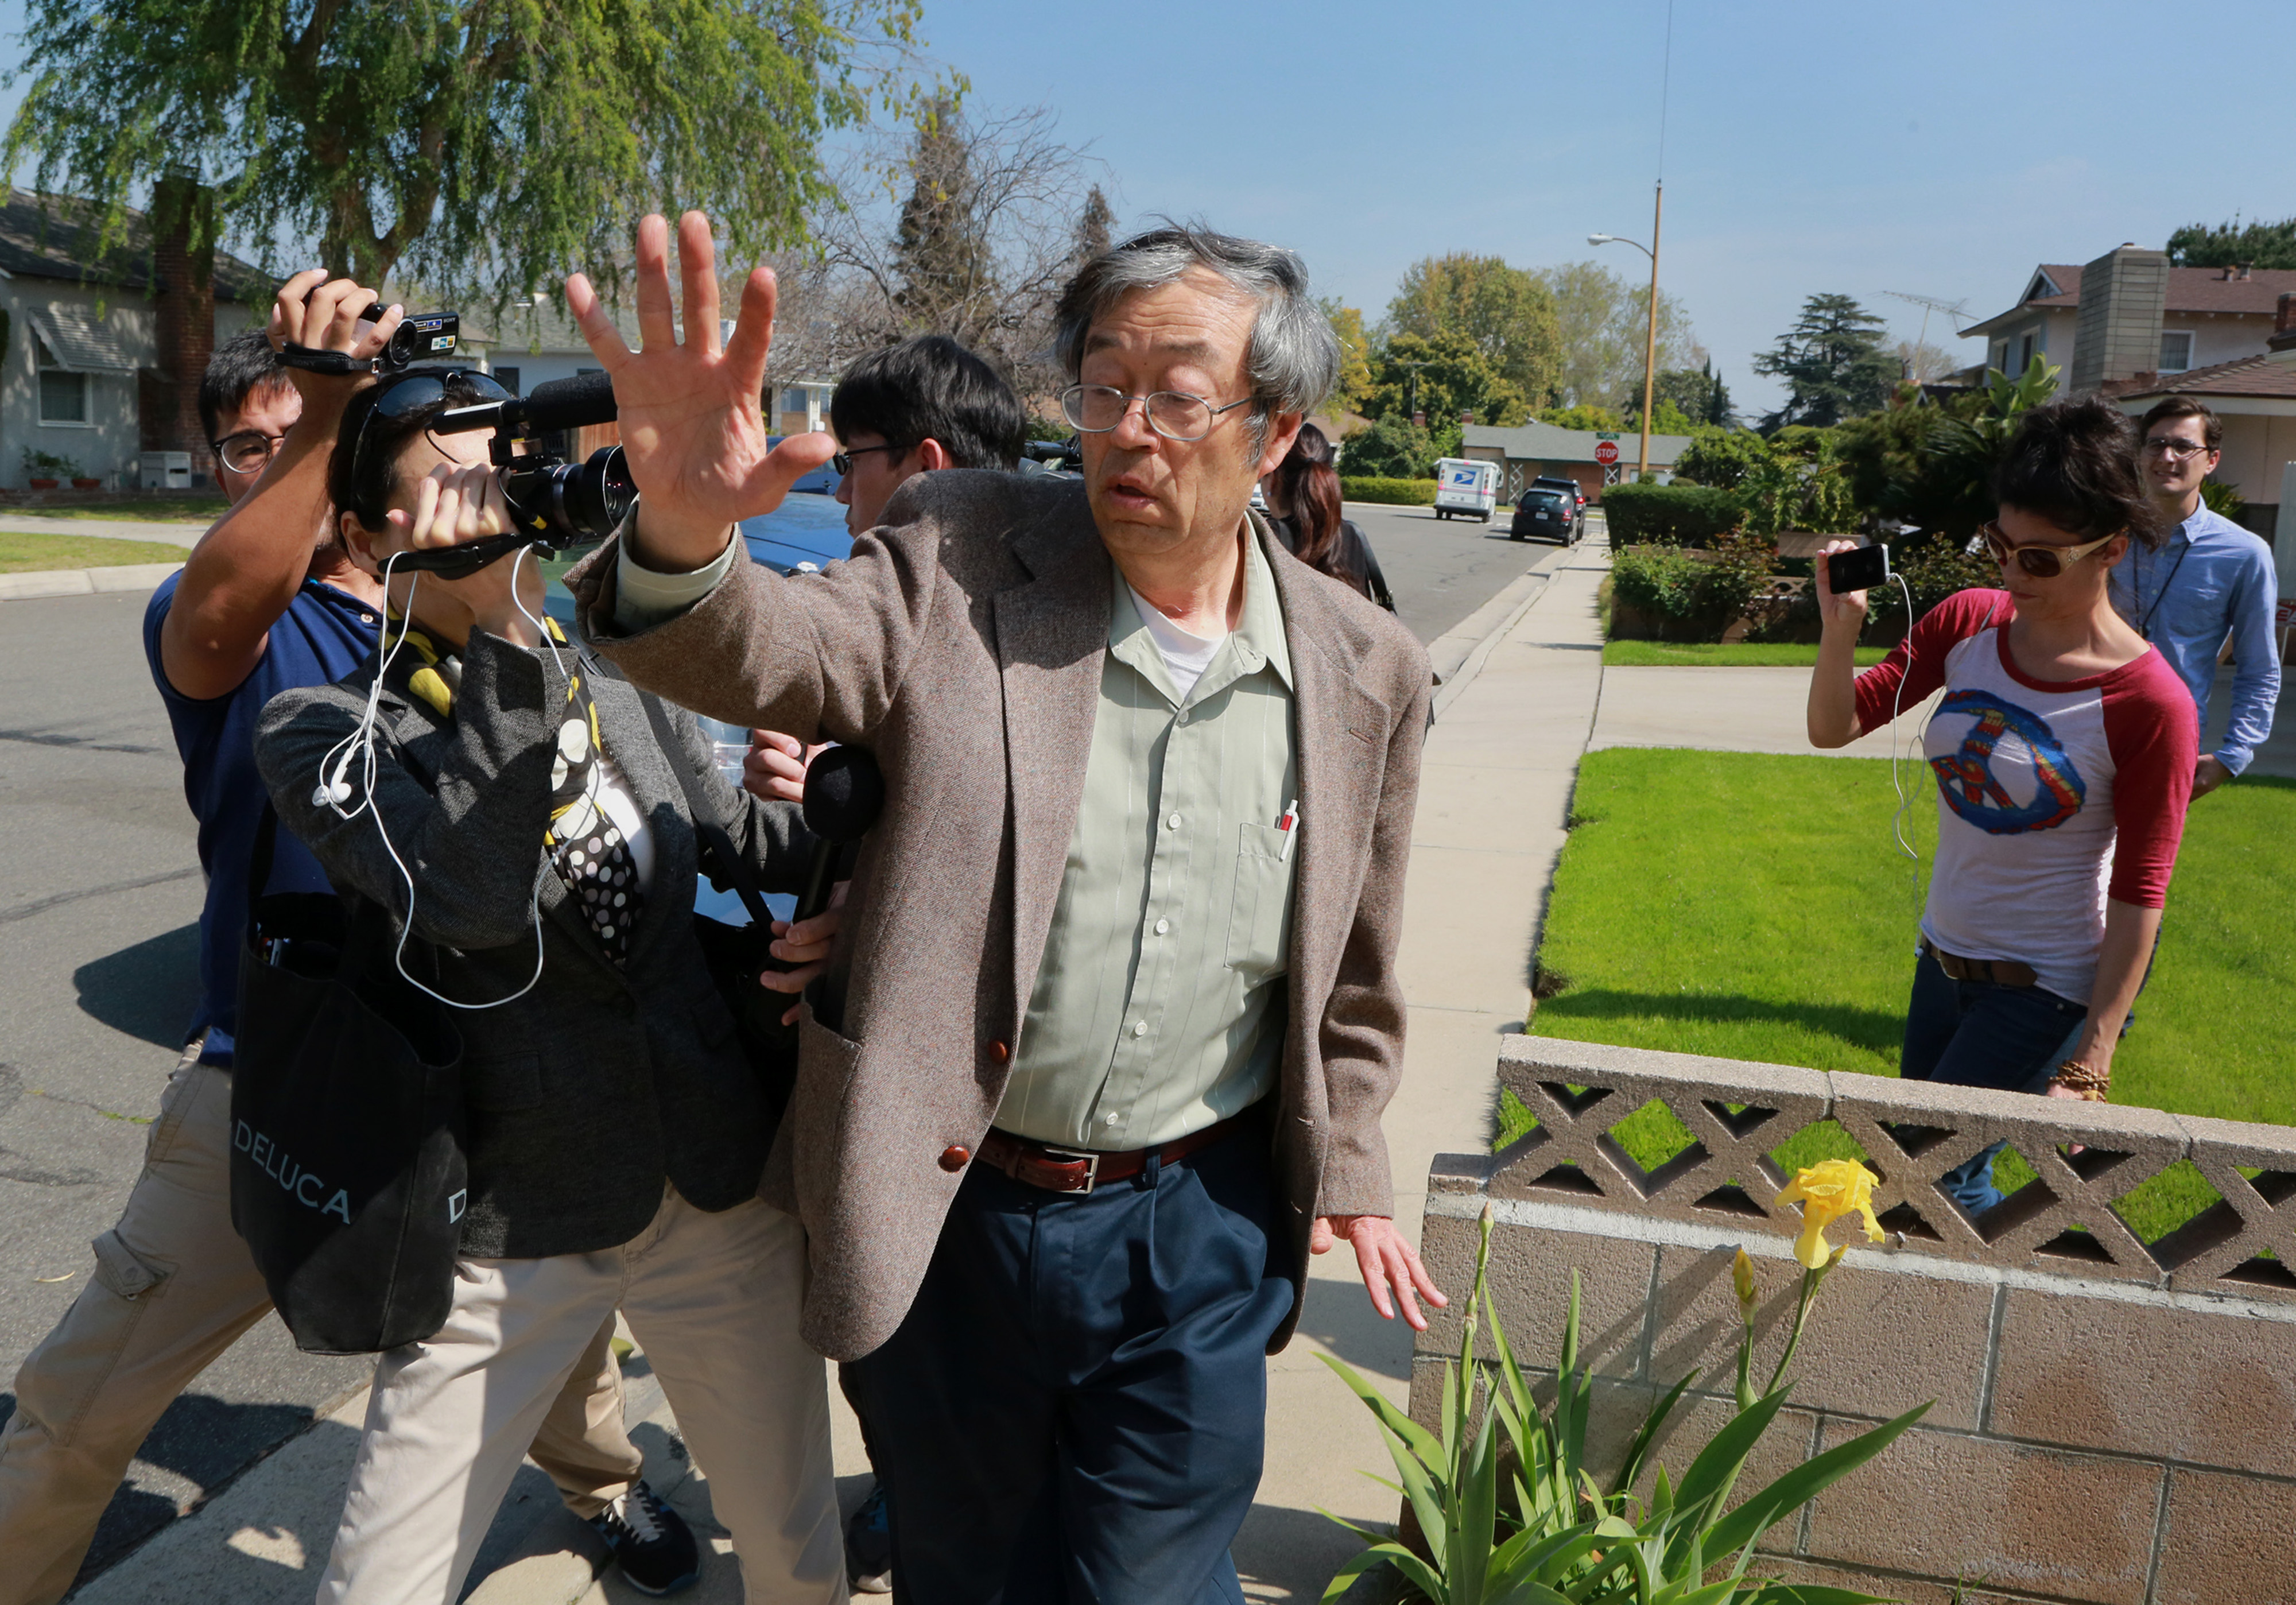 Nakamoto Named as Bitcoin Father Denies Involvement